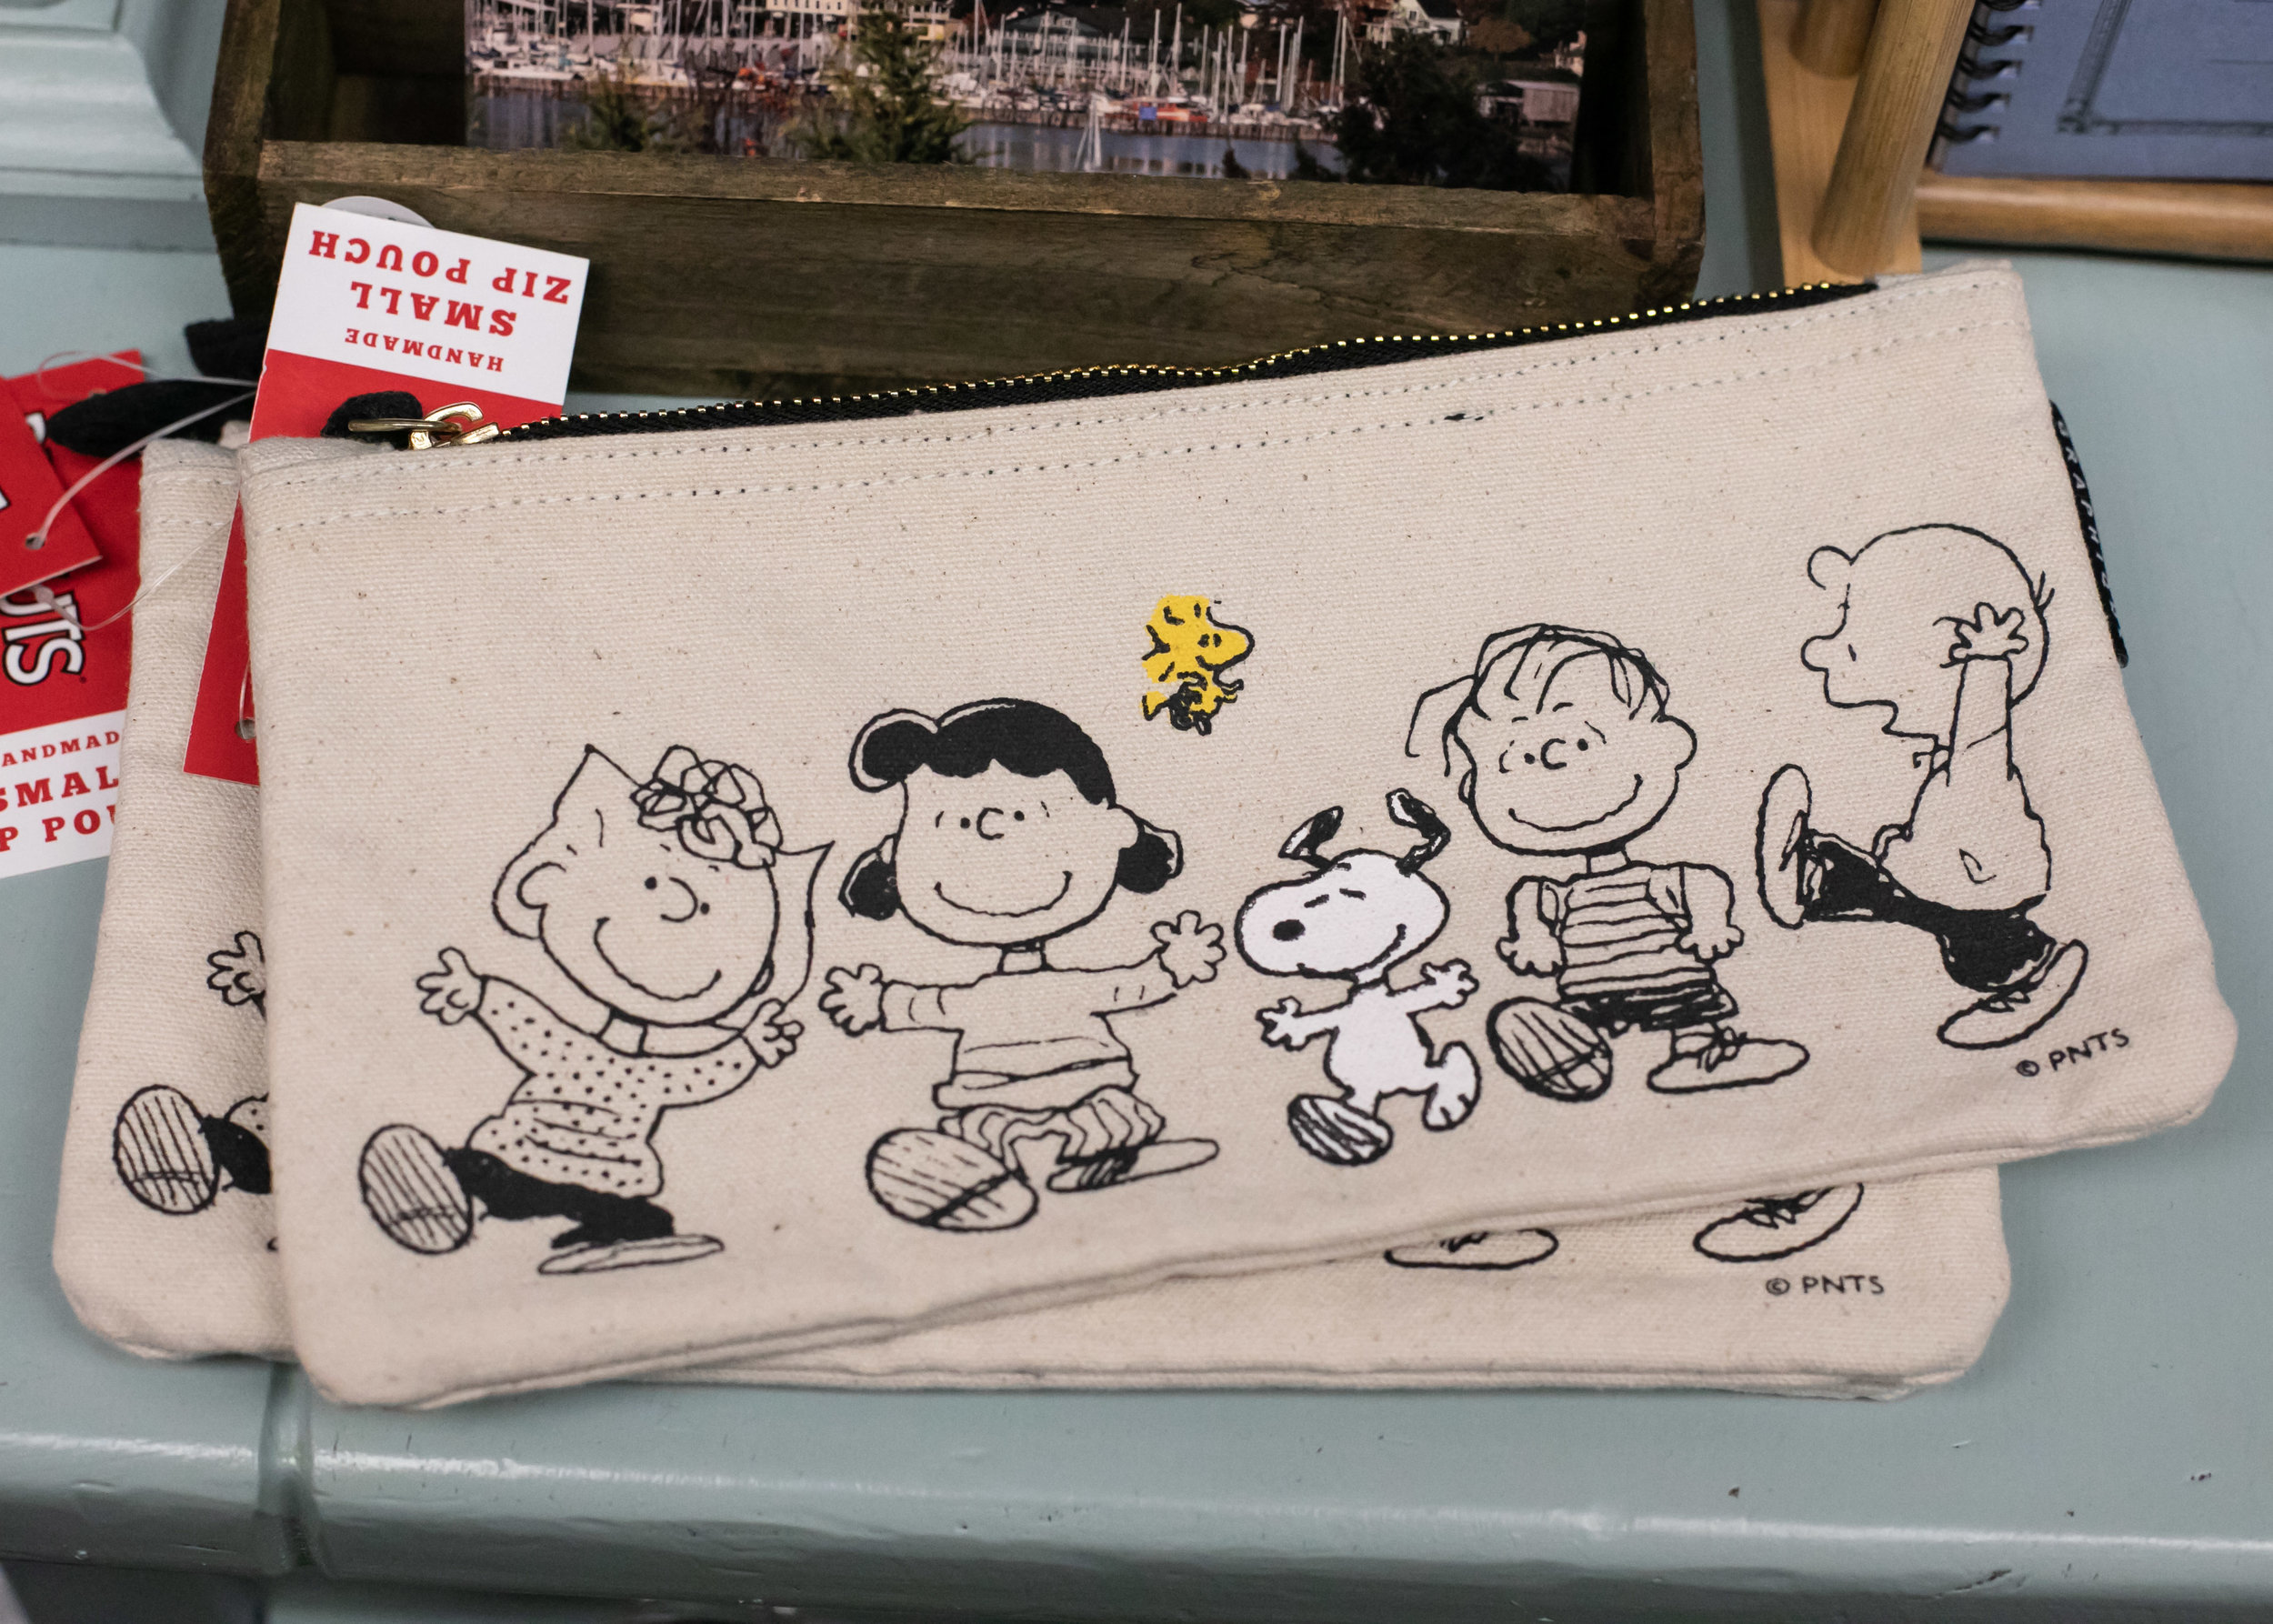 I fell in love with this snoopy zip pouch, and wish I had bought it, because it's adorable and I have a weakness for pen pouches.